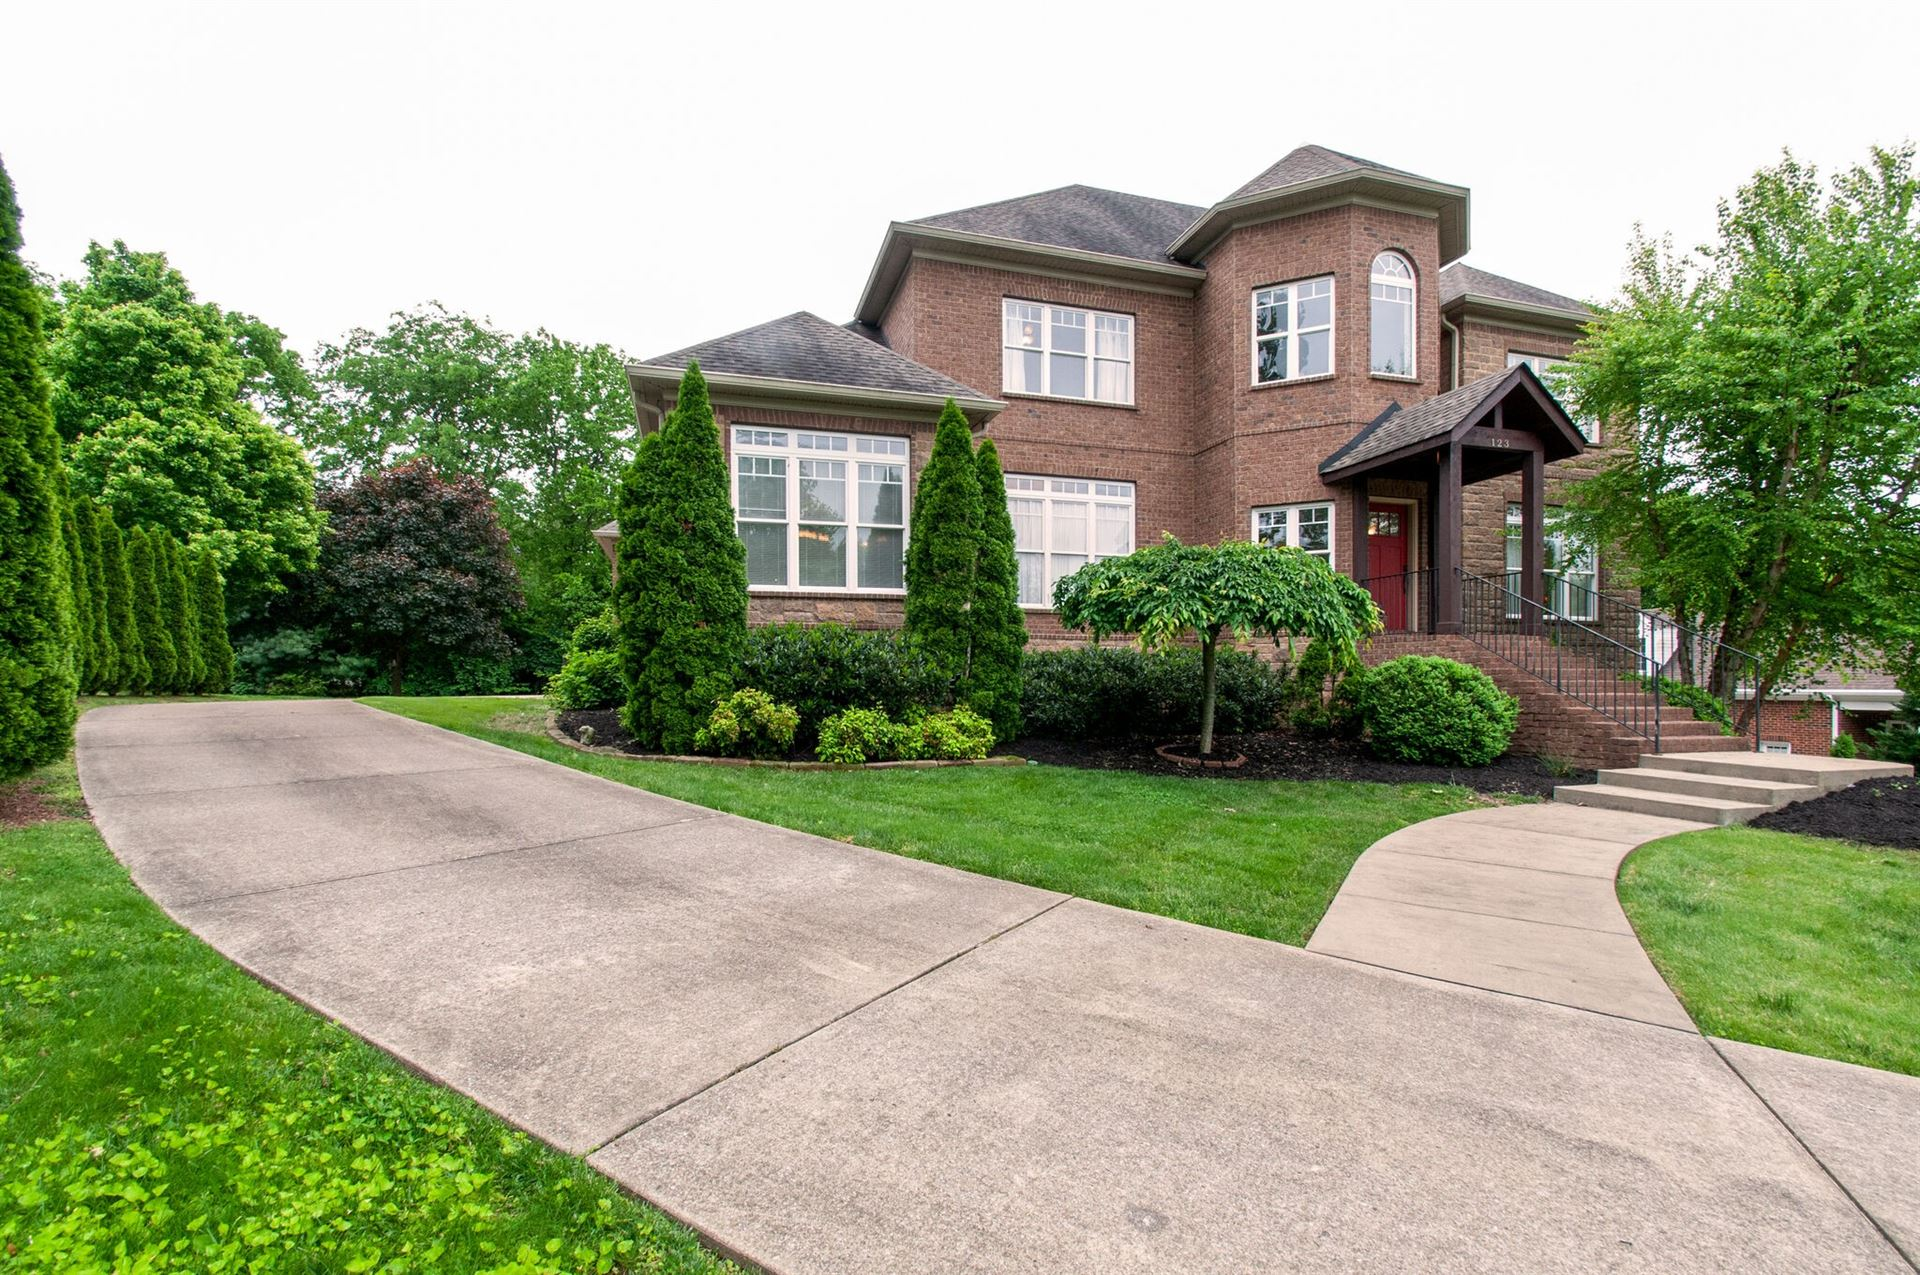 Photo of 123 Wynthrope Way, Franklin, TN 37067 (MLS # 2252666)